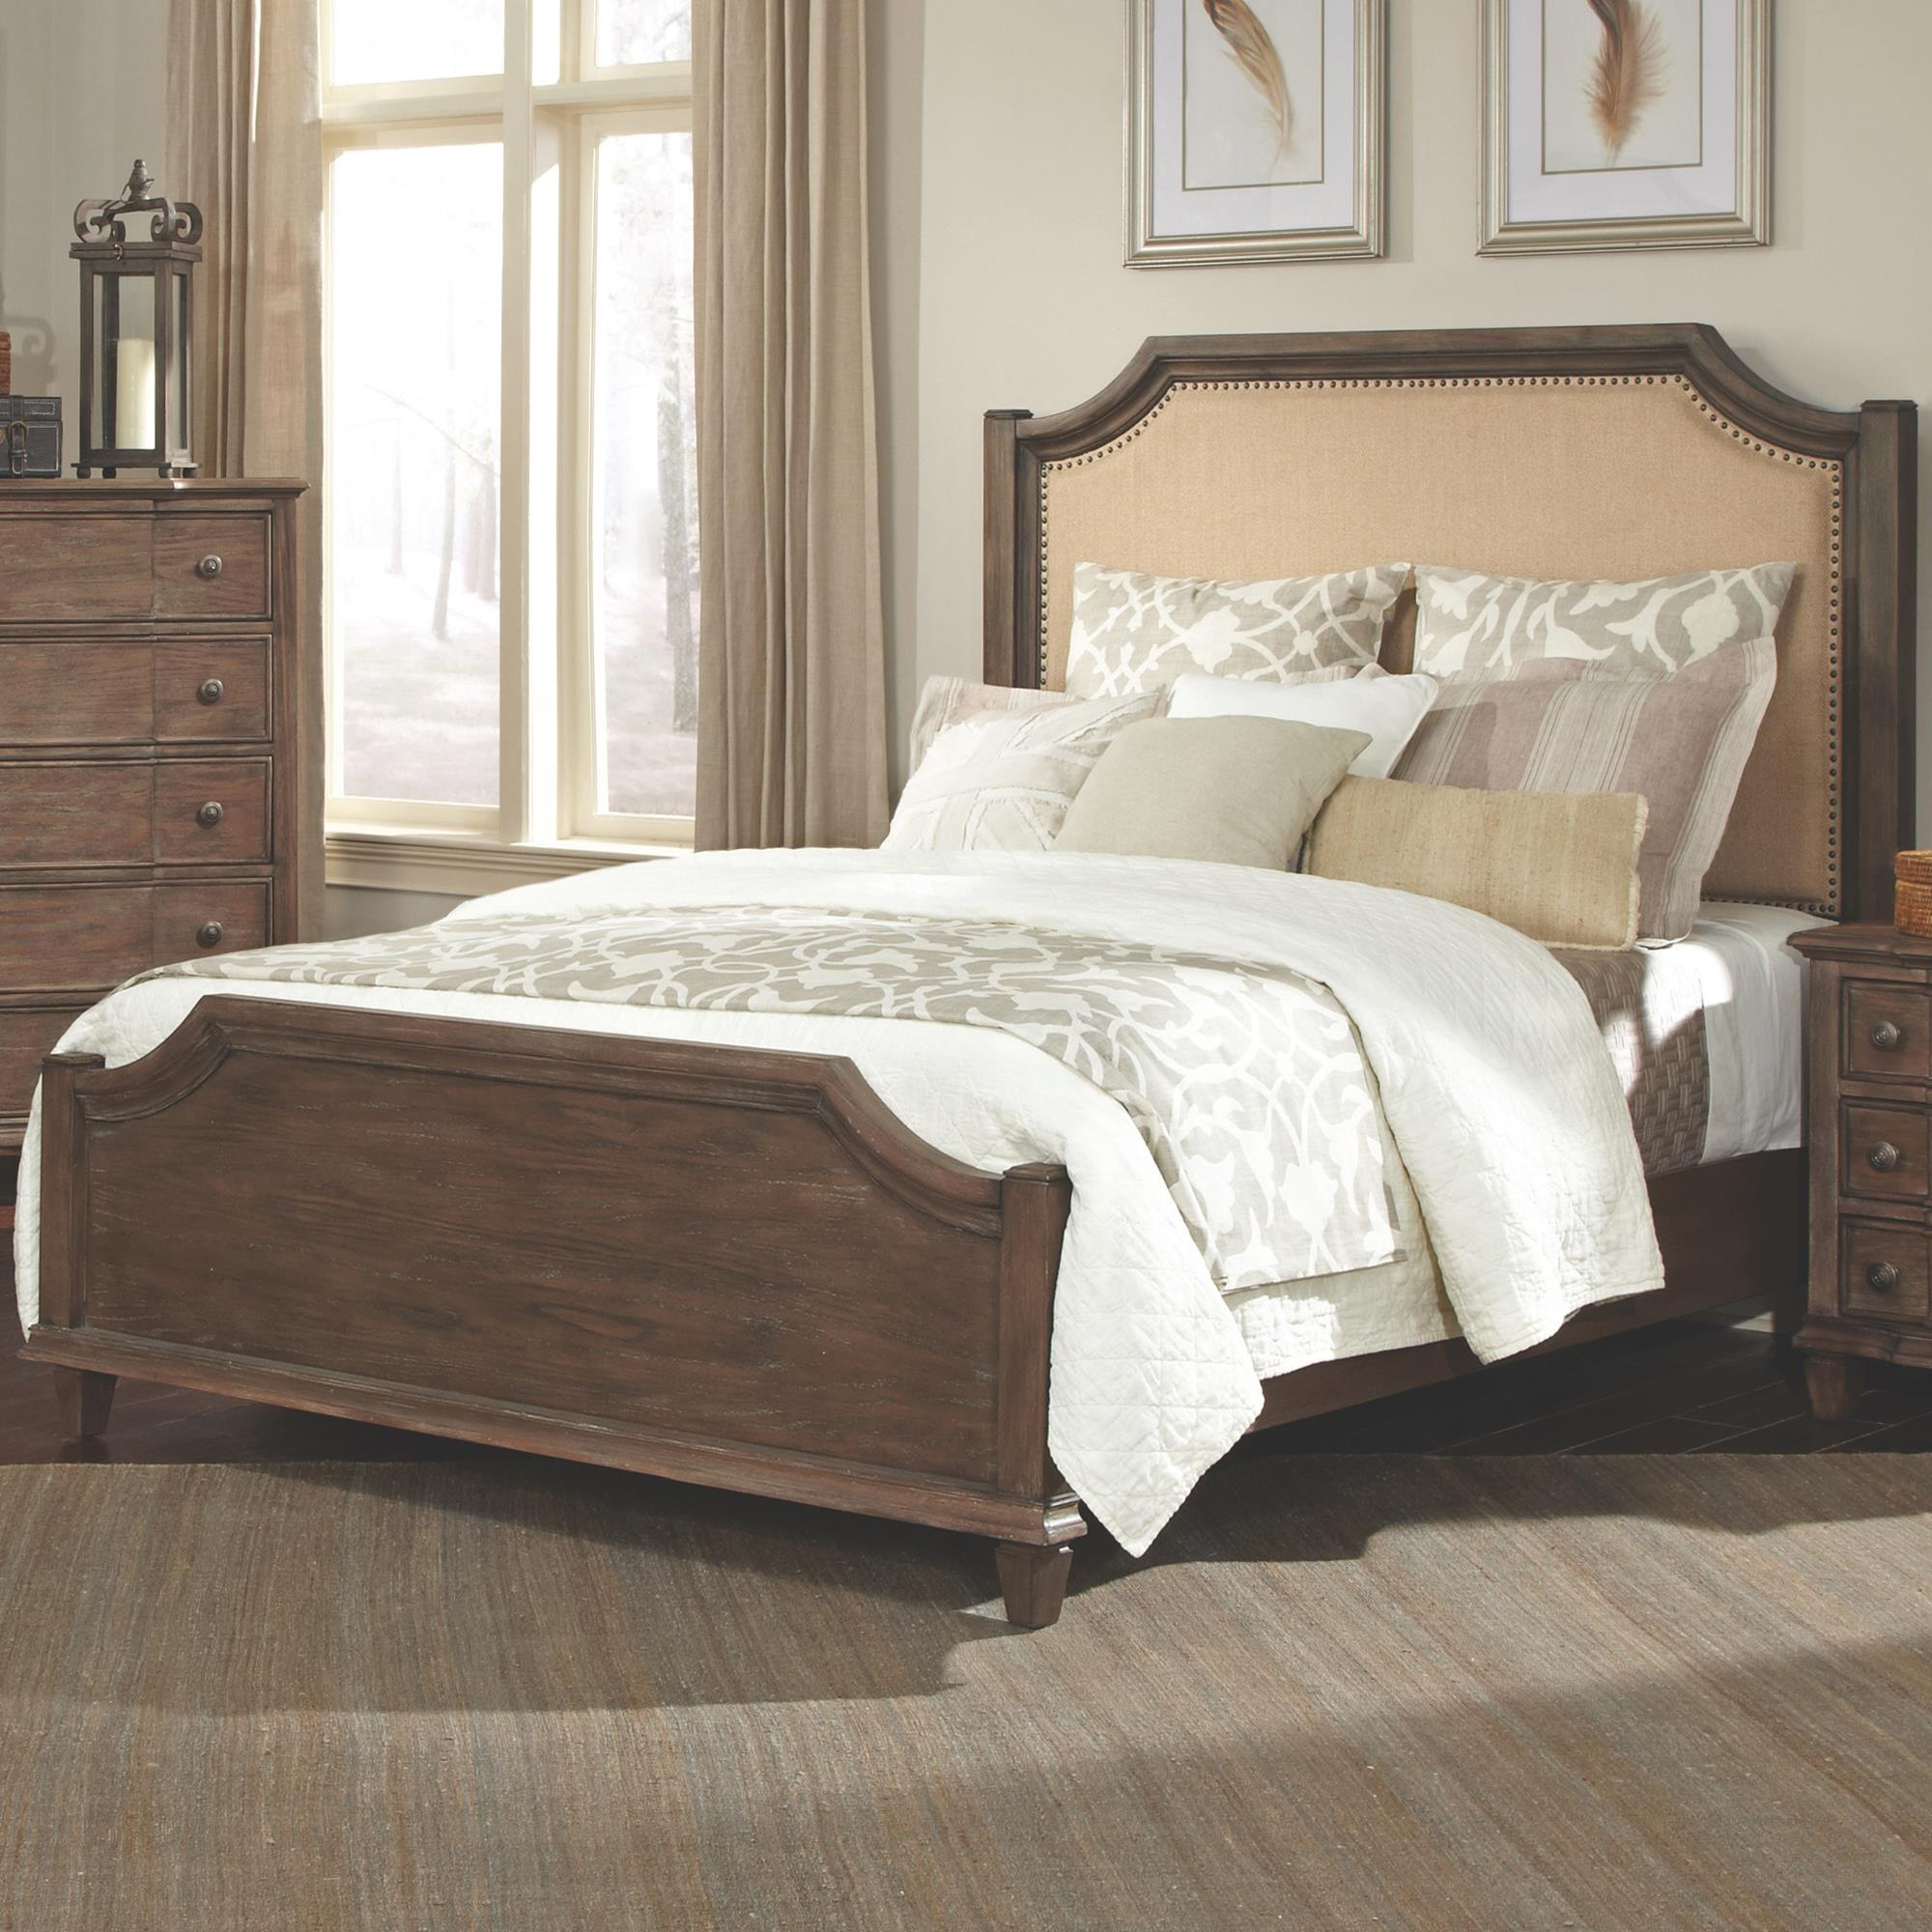 Coaster Dalgarno Queen Bed with Upholstered Headboard - Item Number: 204241Q